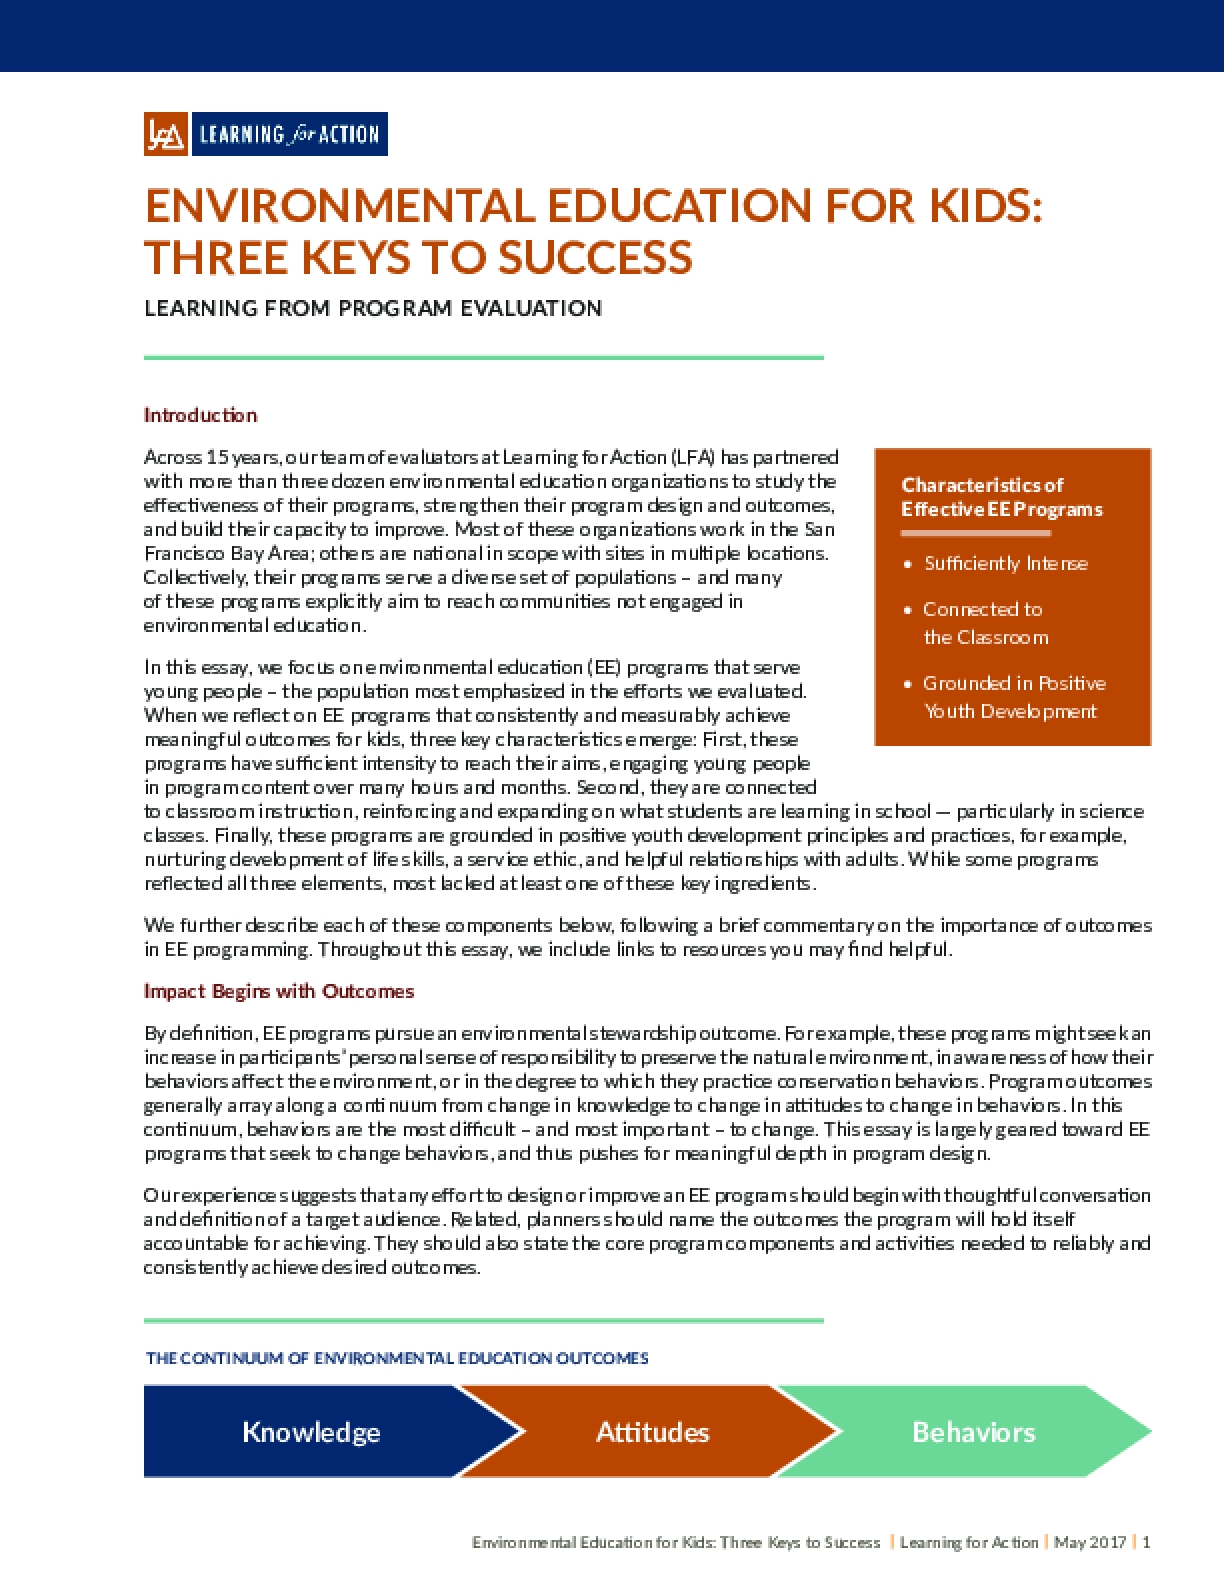 Environmental Education for Kids: Three Keys to Success Learning From Program Evaluation